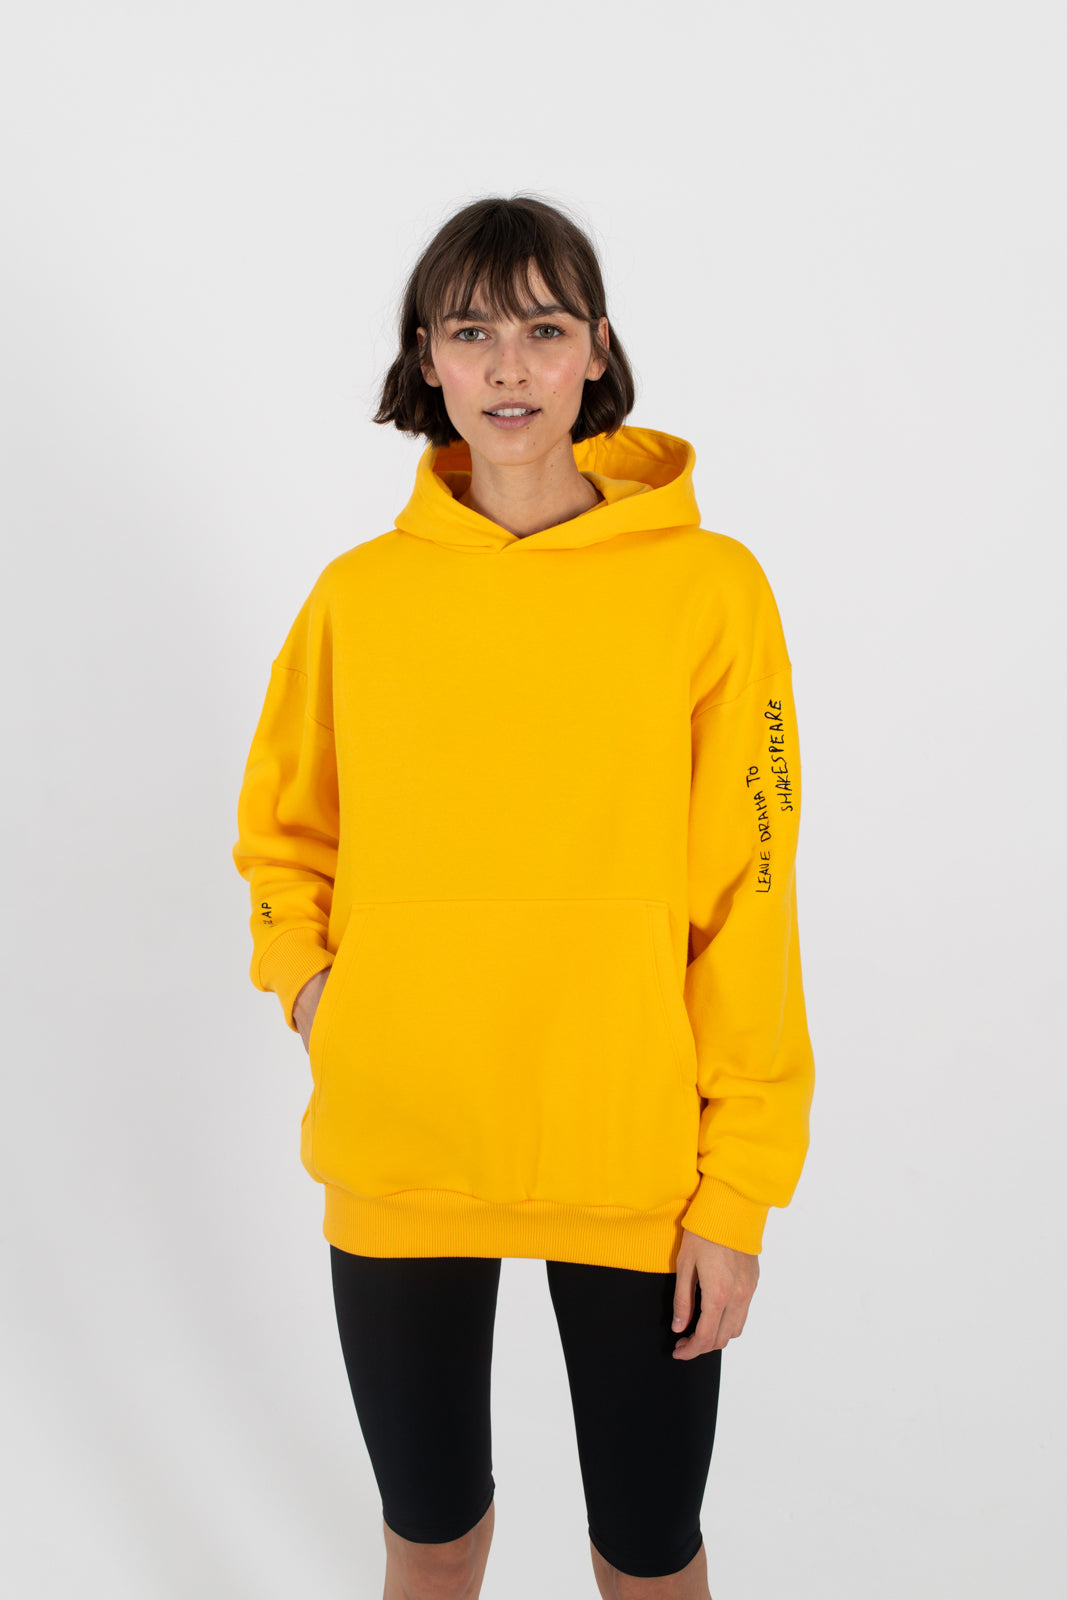 Le SLAP | SHAKESPEARE marigold yellow hoodie